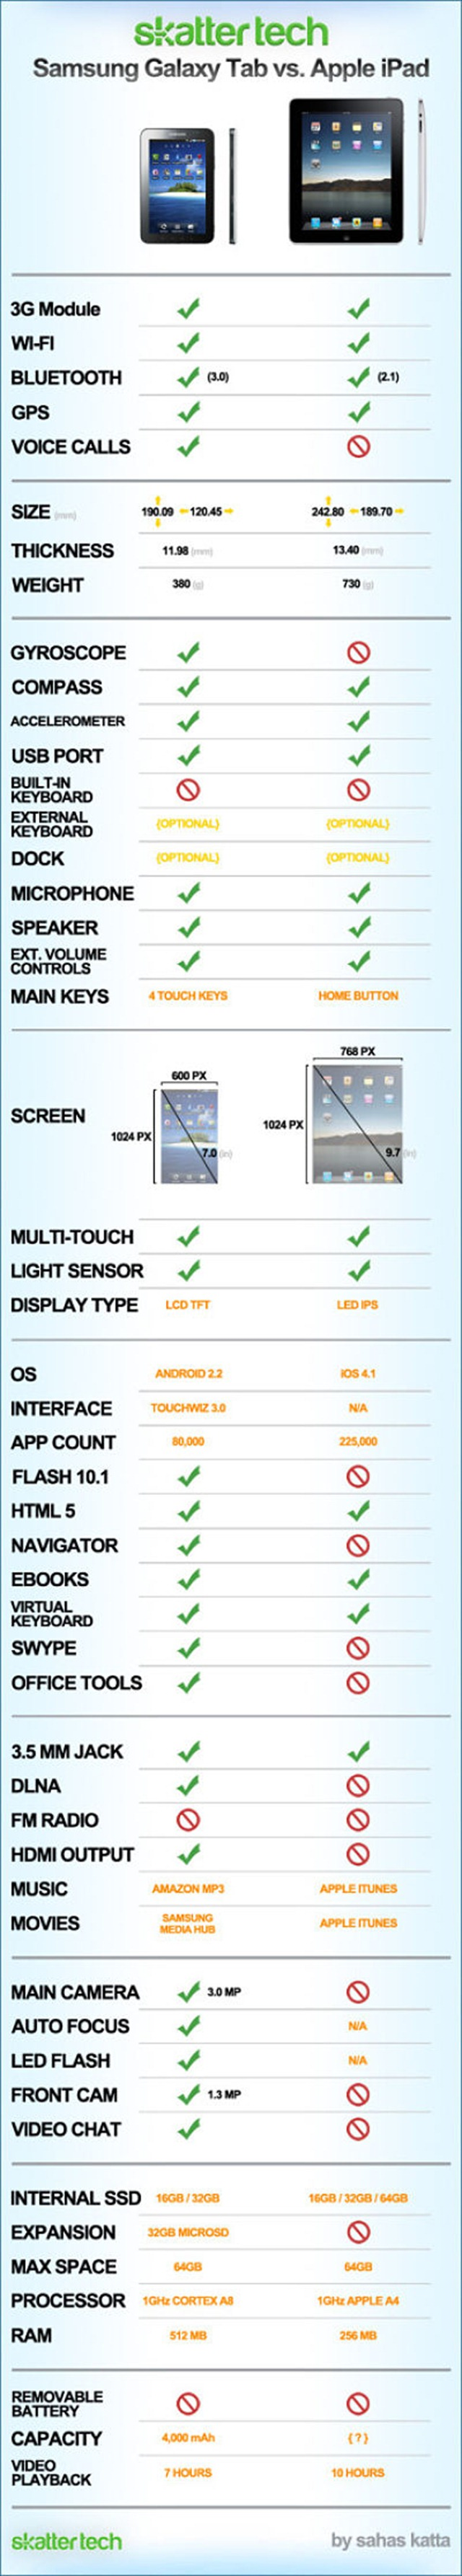 ipad_vs_samsung_galaxy_tab_thumb